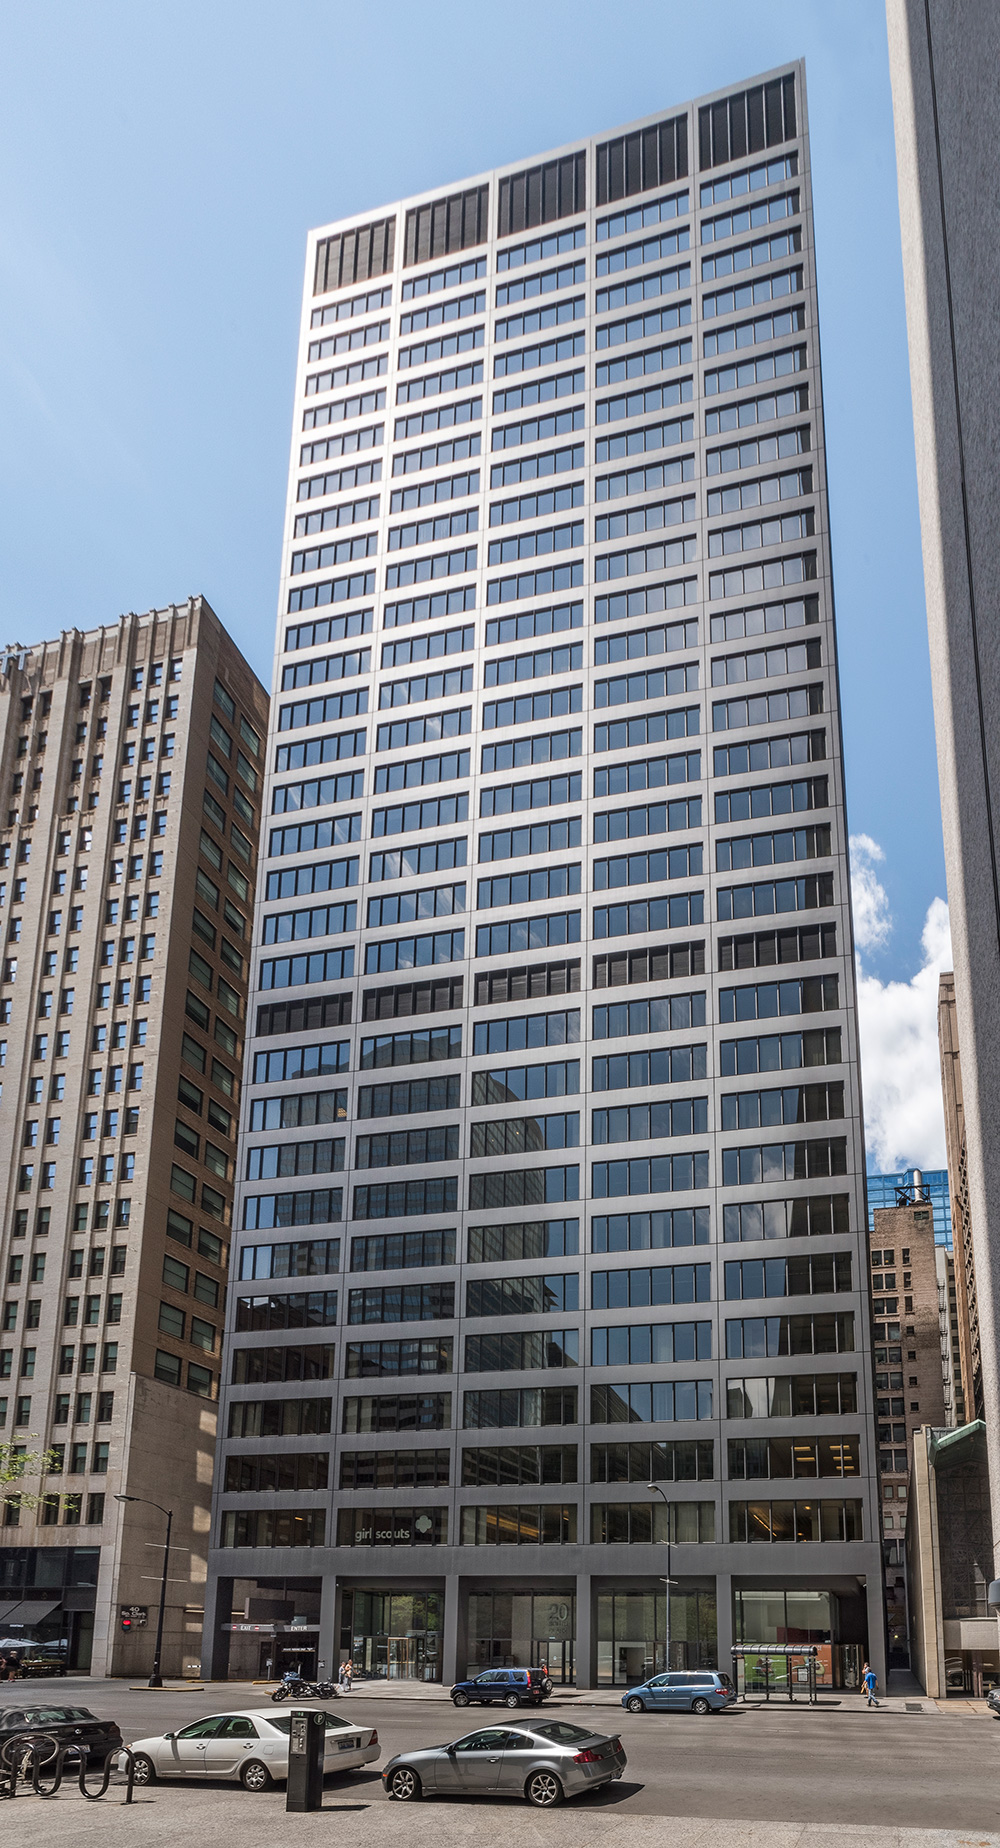 20 South Clark Street in Chicago